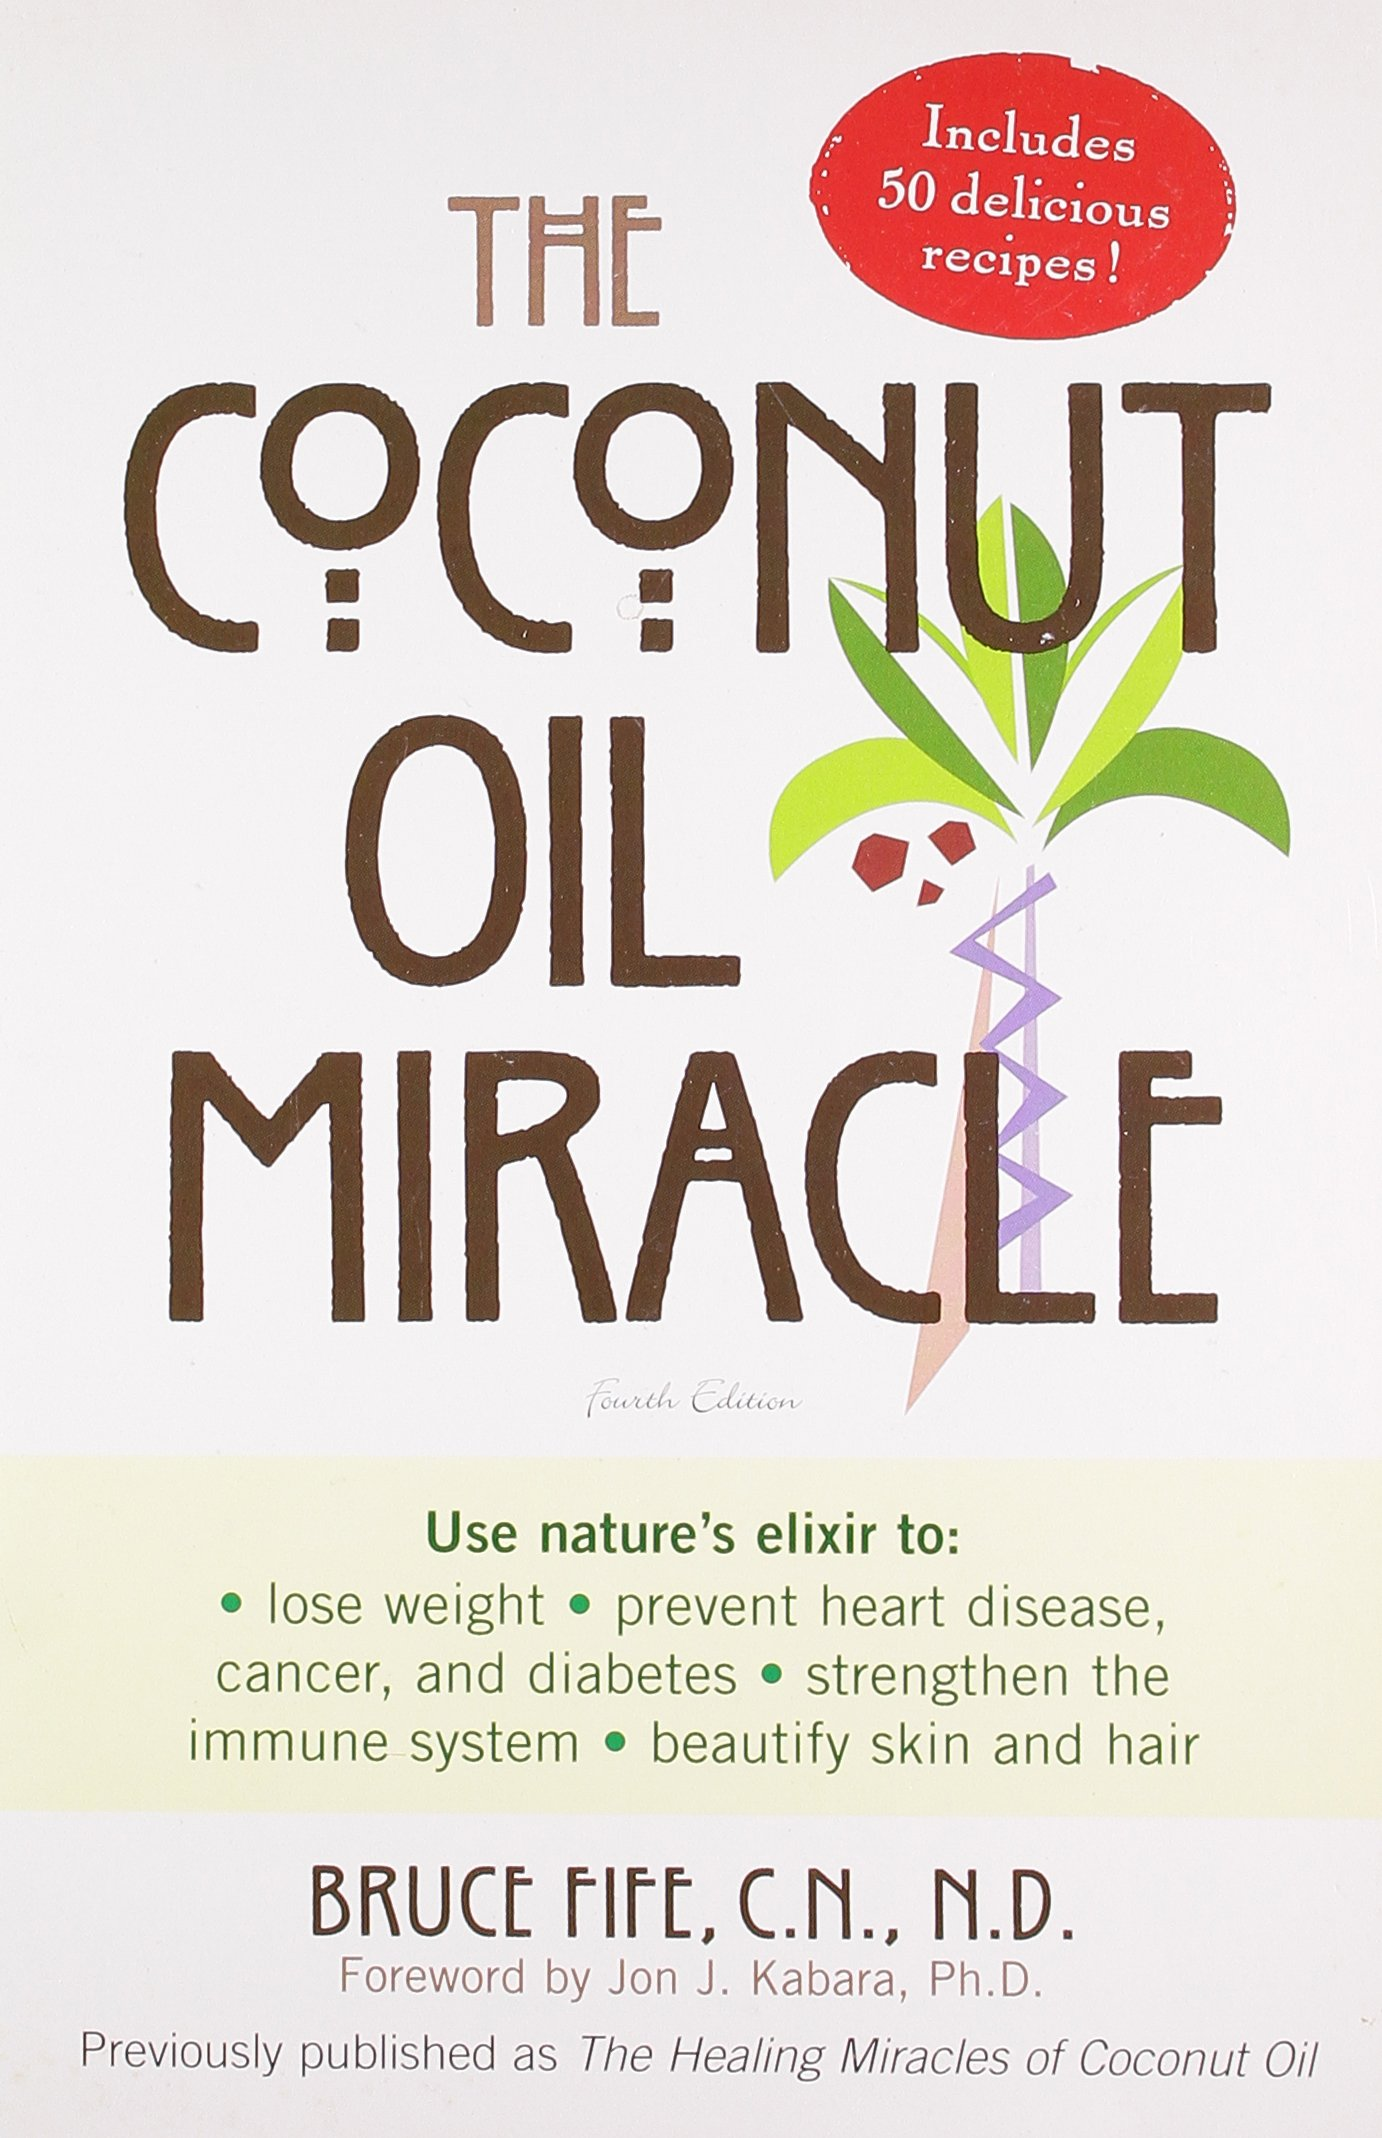 "The Coconut Oil Miracle - by Bruce Fife, NDUse nature's elixir to lose weight, prevent heart disease, cancer, and diabetes, and beautify skin and hair. Can saturated fat be good for you?Natural coconut oil-not the hydrogenated version often found in processed foods-is a saturated fat, but not the kind your doctor has warned you about. Studies have shown that this uniquely curative oil actually has innumerable health benefits ranging from disease prevention to anti-aging. Now, in his revised edition of the first book to describe the therapeutic properties of coconut oil, Bruce Fife offers a nutrition plan with dozens of tasty recipes that will allow anyone to experience the healing miracles of what he deems the ""perfect food."" When taken as a supplement, used in cooking, or applied to directly to the skin, coconut oil has been found to:+ Promote weight loss+ Help protect against heart disease, cancer, diabetes, arthritis, and many other degenerative diseases+ Strengthen the immune system+ Improve digestion+ Prevent premature aging of the skin"